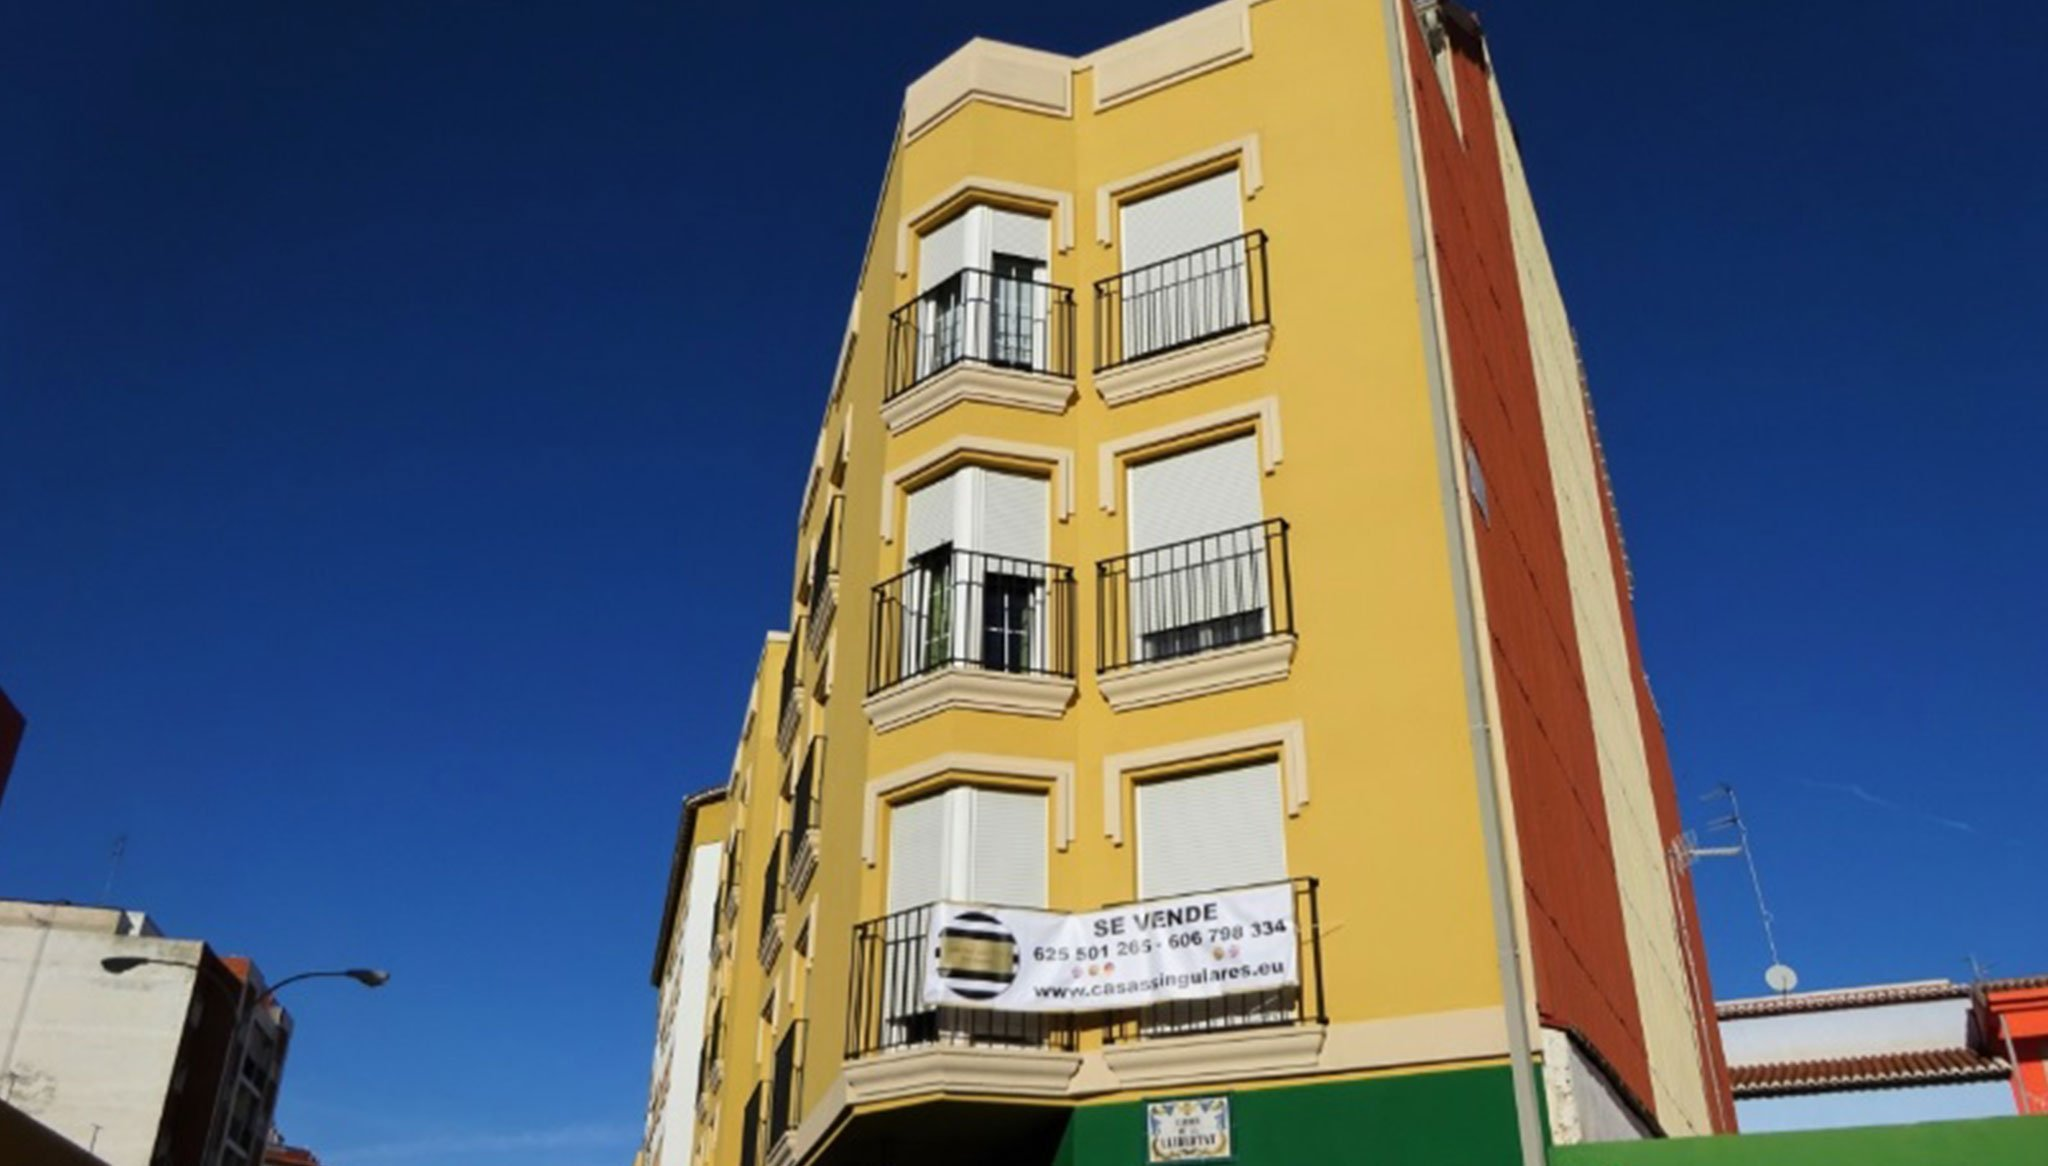 Facade of a flat for sale in Dénia - Casas Singulares